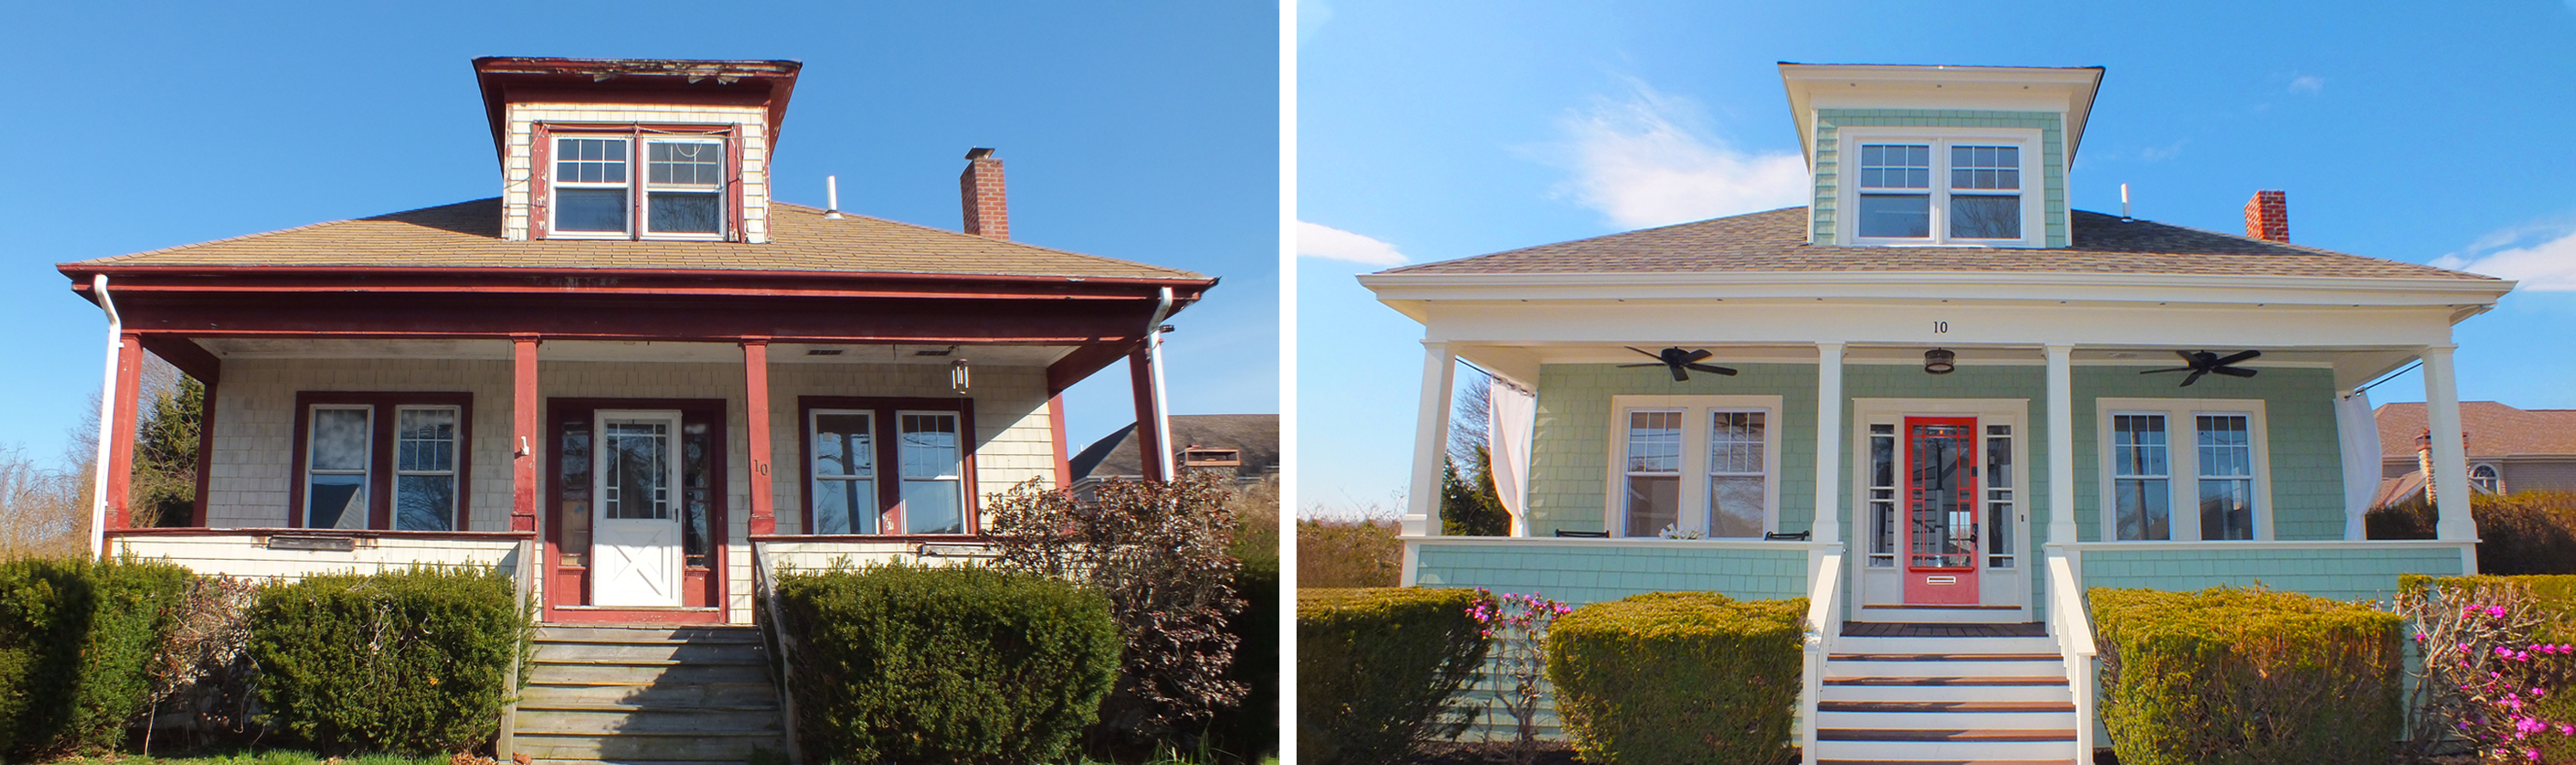 Bungalow Renovation Before and After